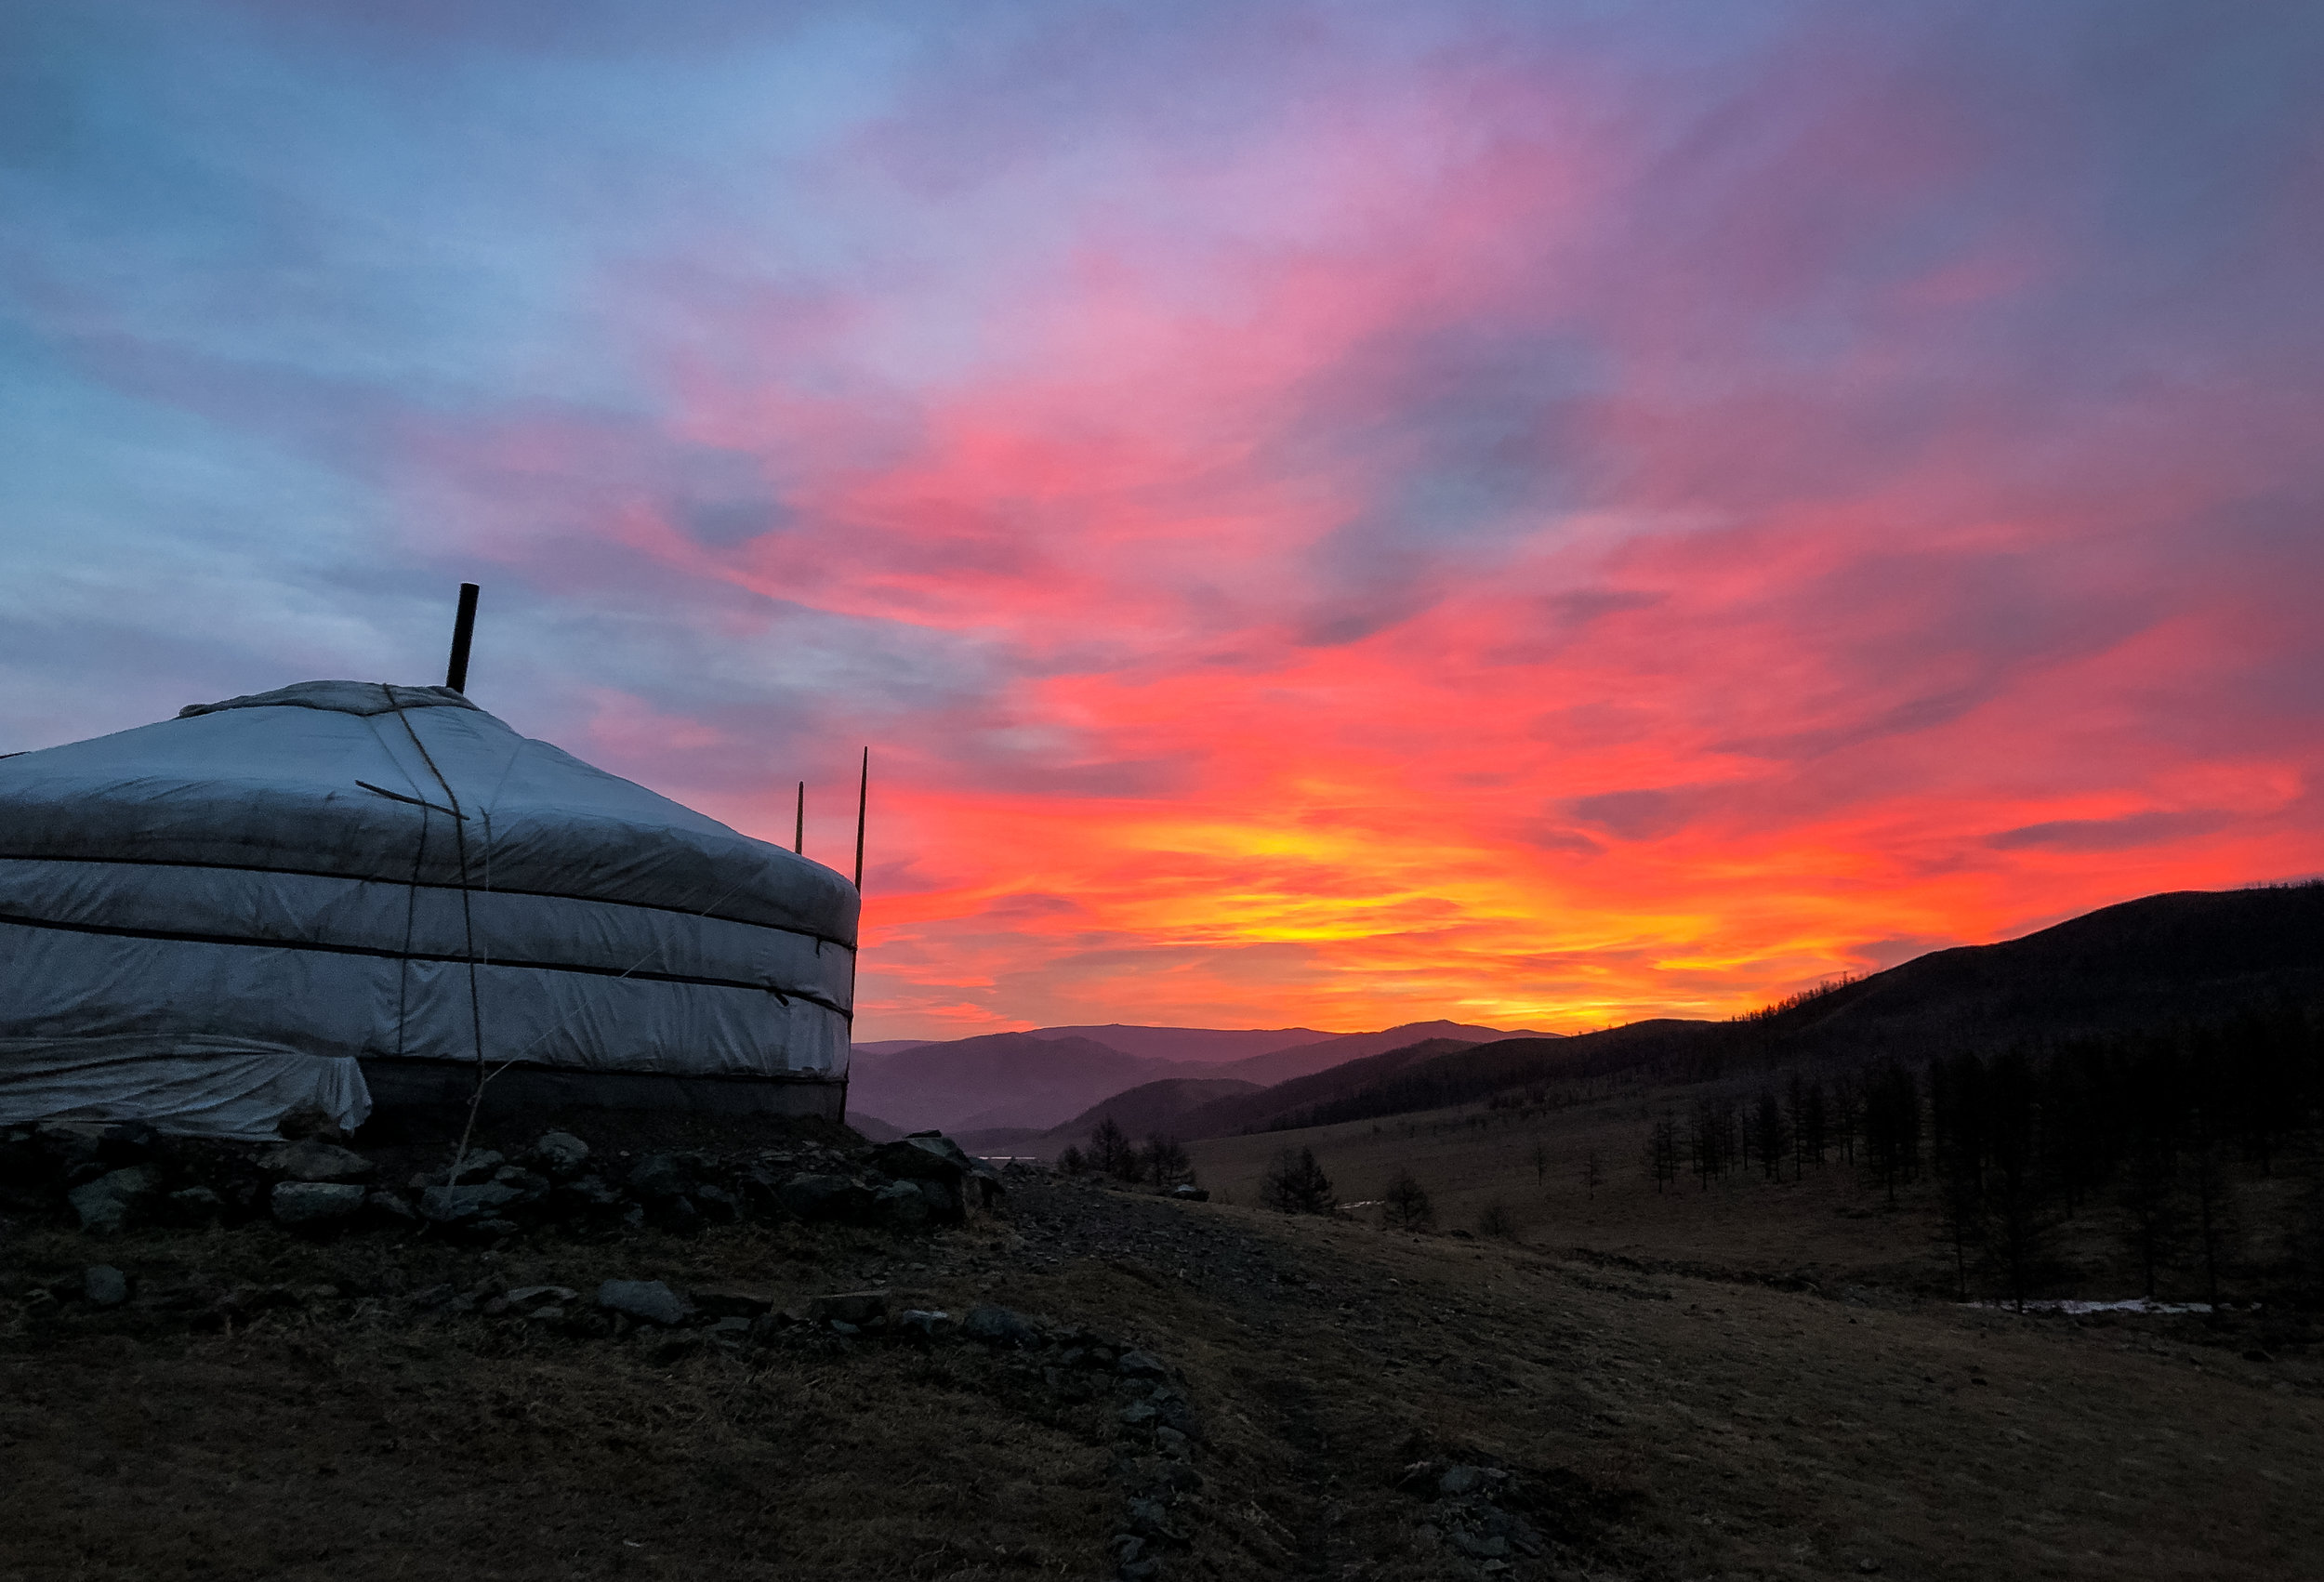 Accommodation - Stay in a plush and cozy Mongolian ger while staying close to nature in Gorkhi-Terelj National Park.For $75/person/night, you get 3 meals and up to 3 hours of horseback riding included per day.